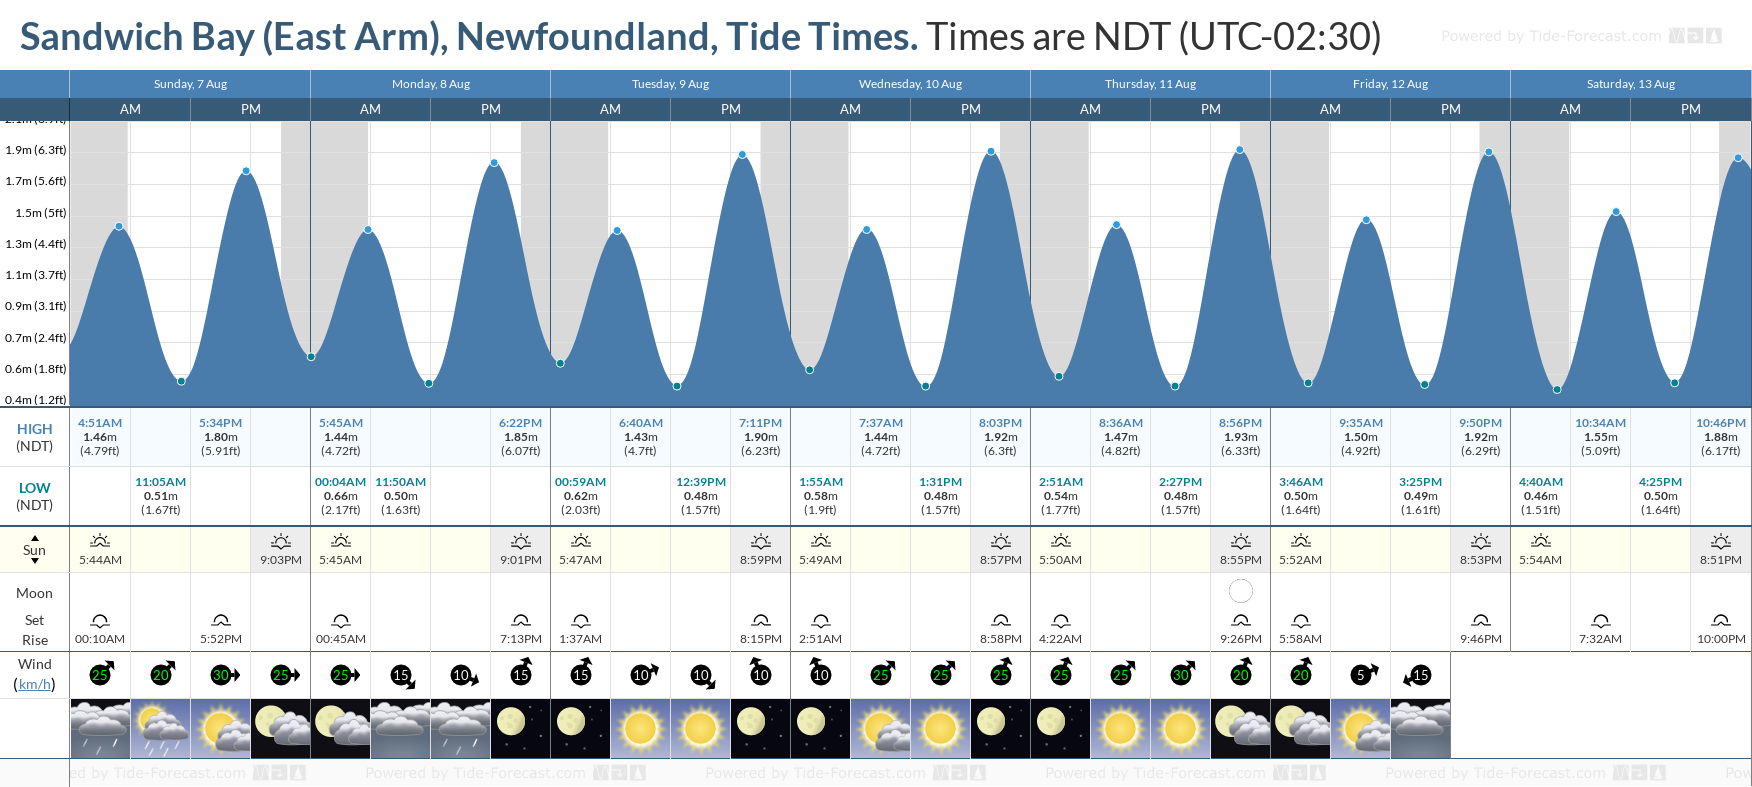 Sandwich Bay (East Arm), Newfoundland Tide Chart including high and low tide tide times for the next 7 days